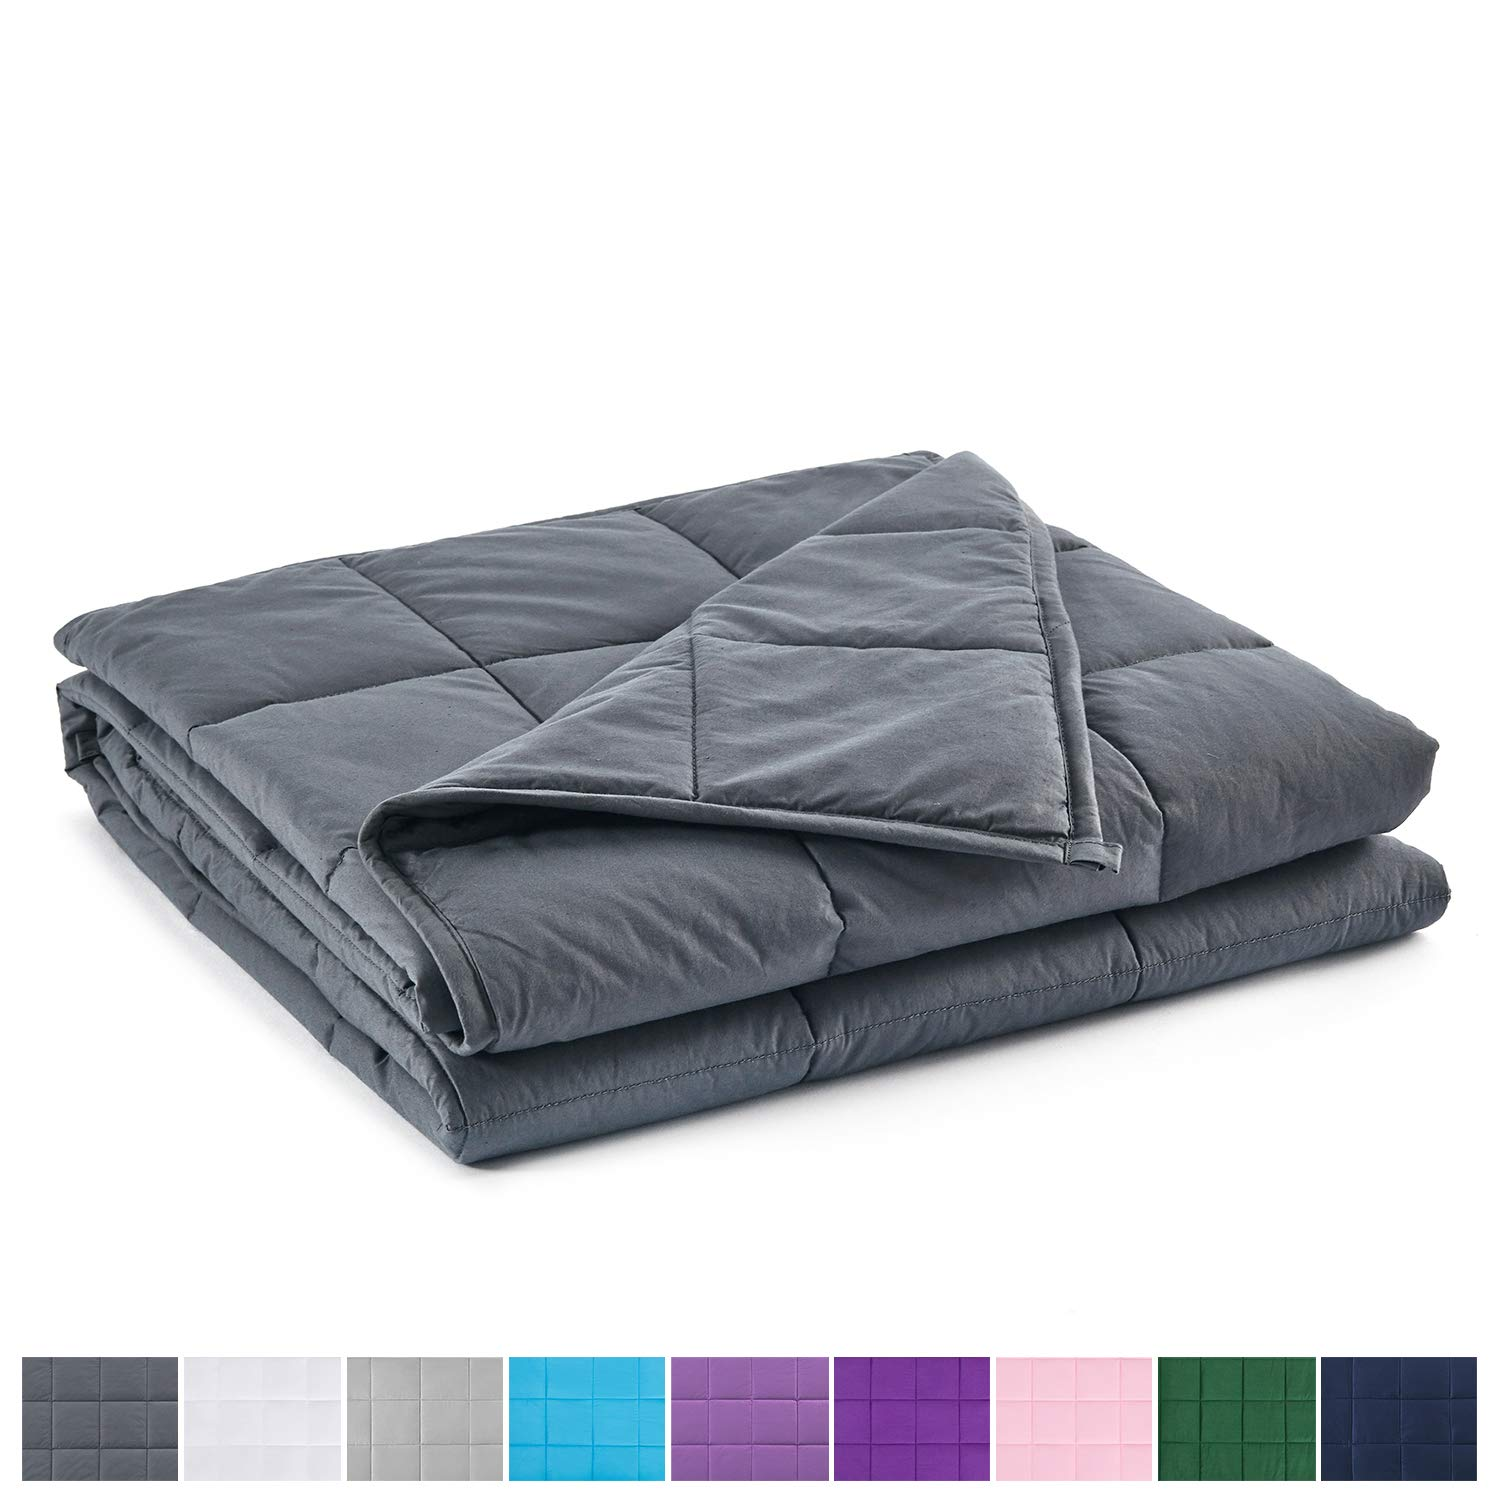 RelaxBlanket Premium Weighted Blanket Natural